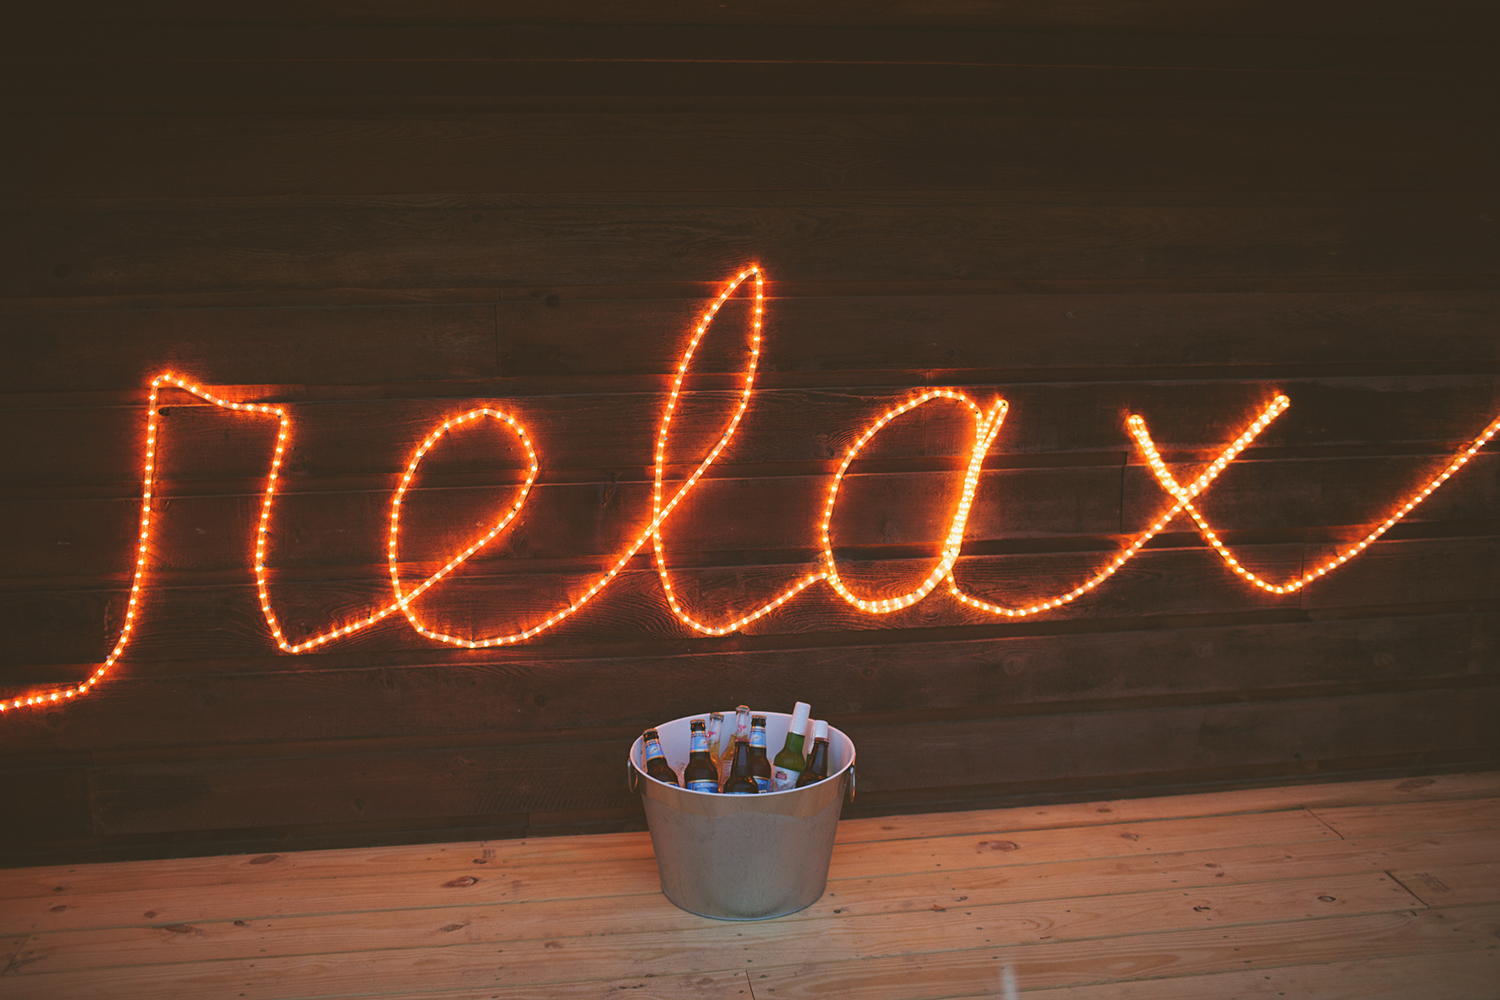 Relax rope light sign